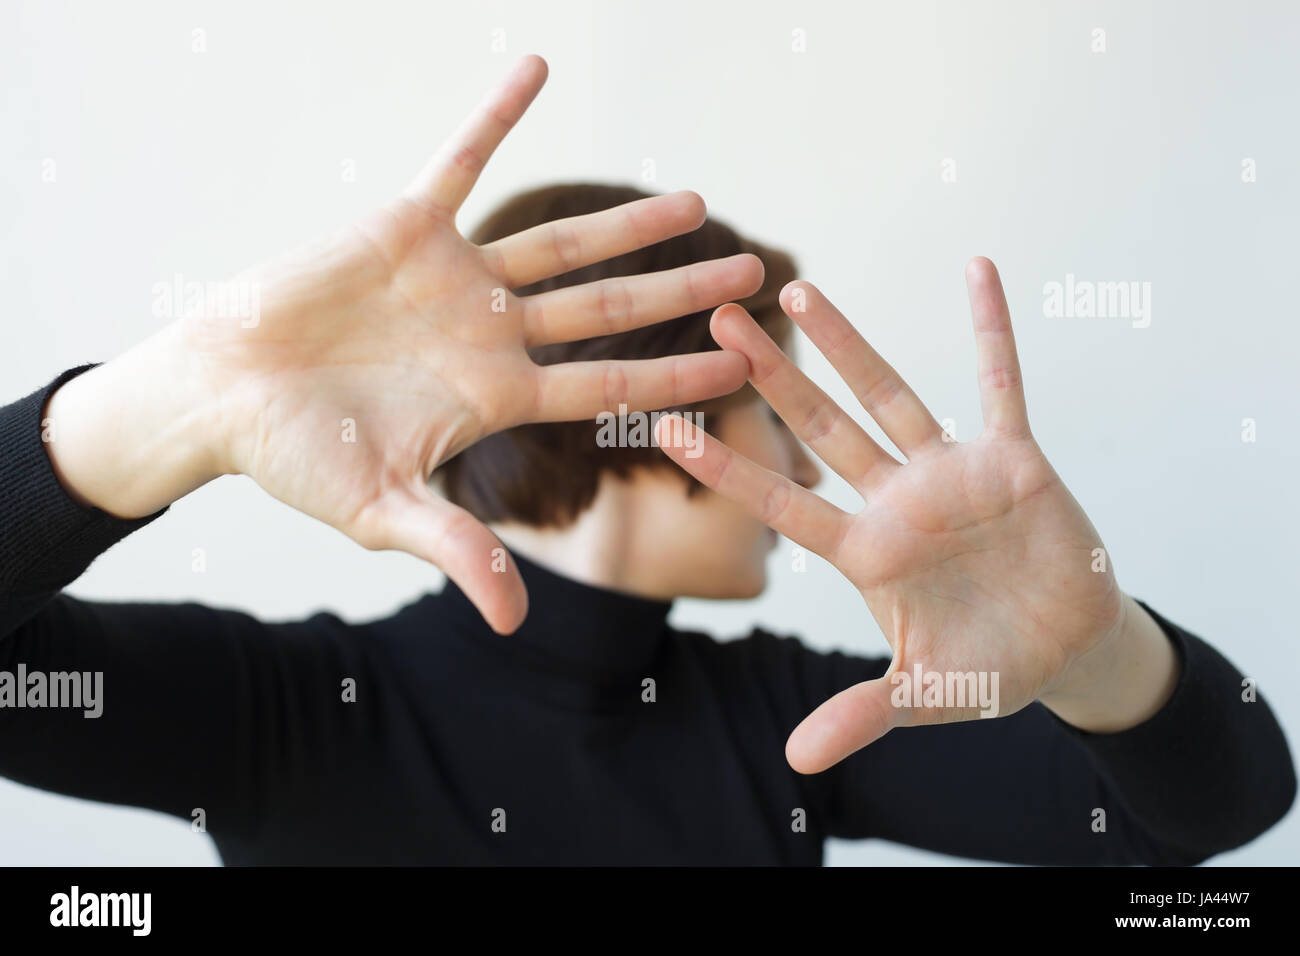 Girl turns aside, stretching her hands forward. Pushing someone away from contact - Stock Image